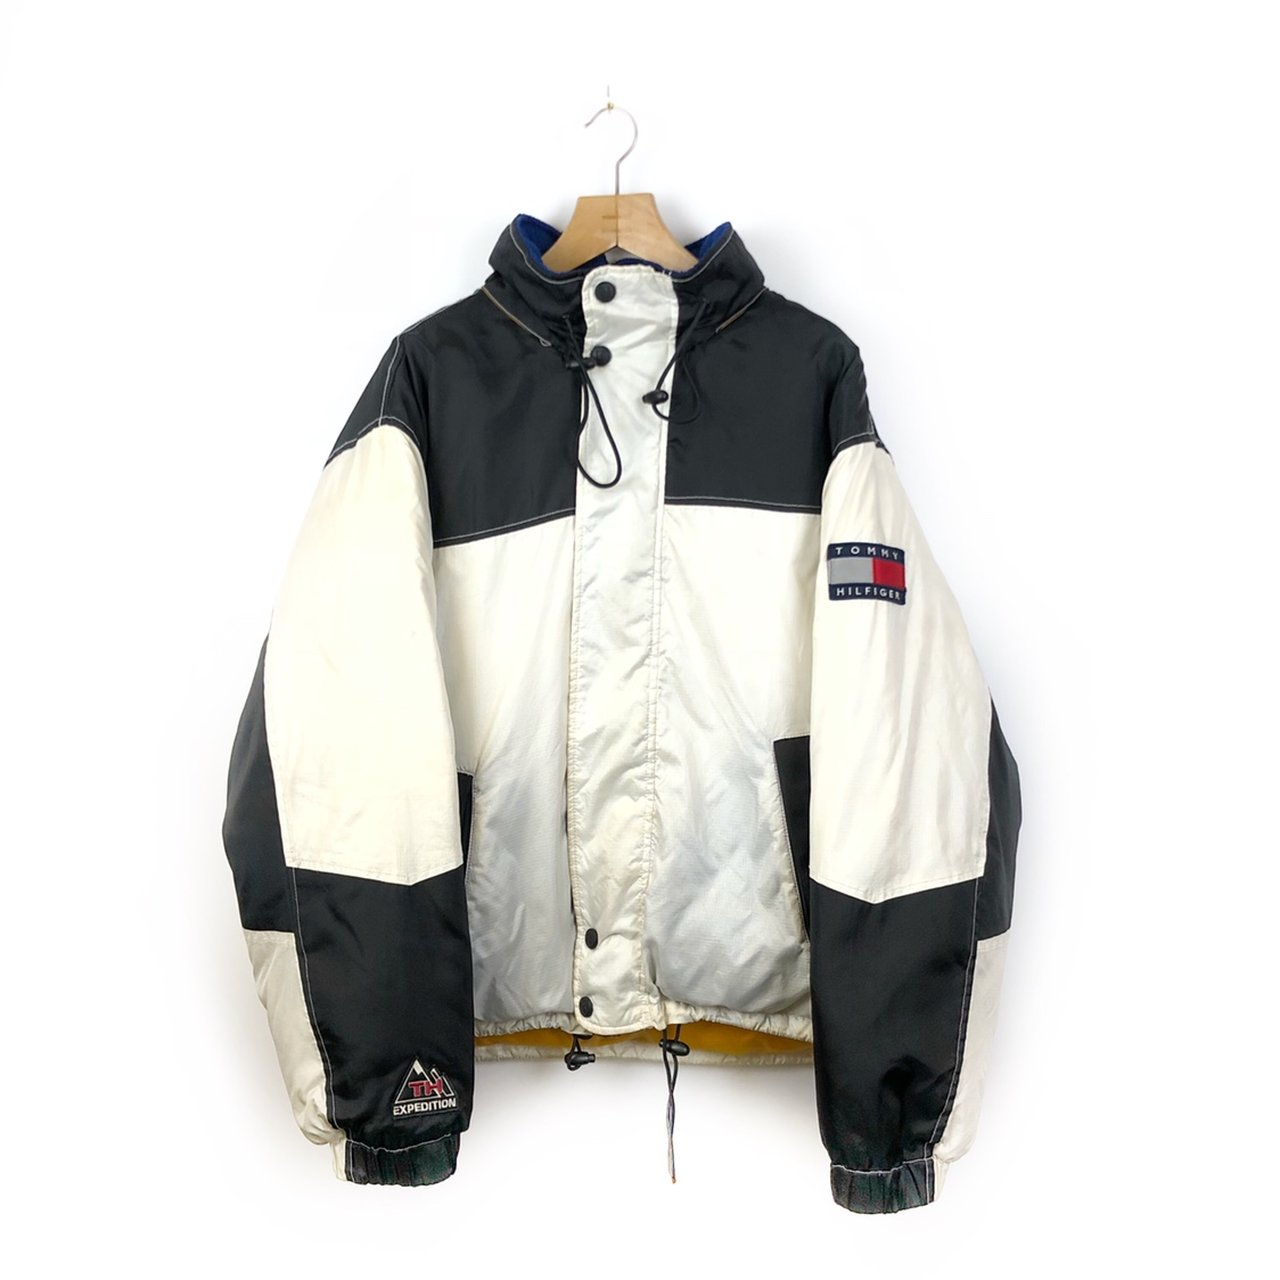 683516e3affda1 Vintage Tommy Hilfiger Expedition Reflective Puffer Jacket. - Depop